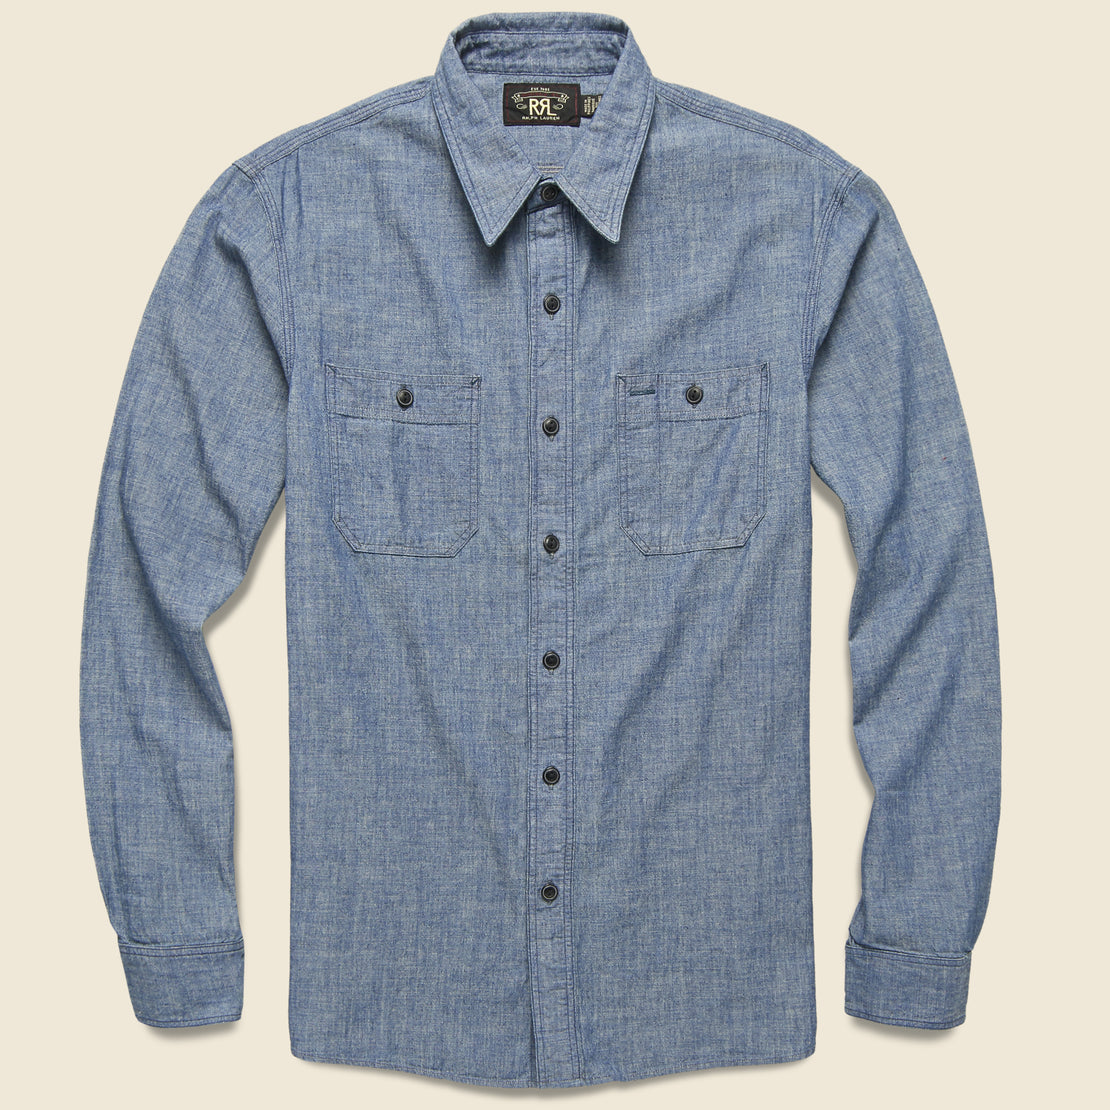 RRL Hudson Chambray Workshirt - Indigo Rinse